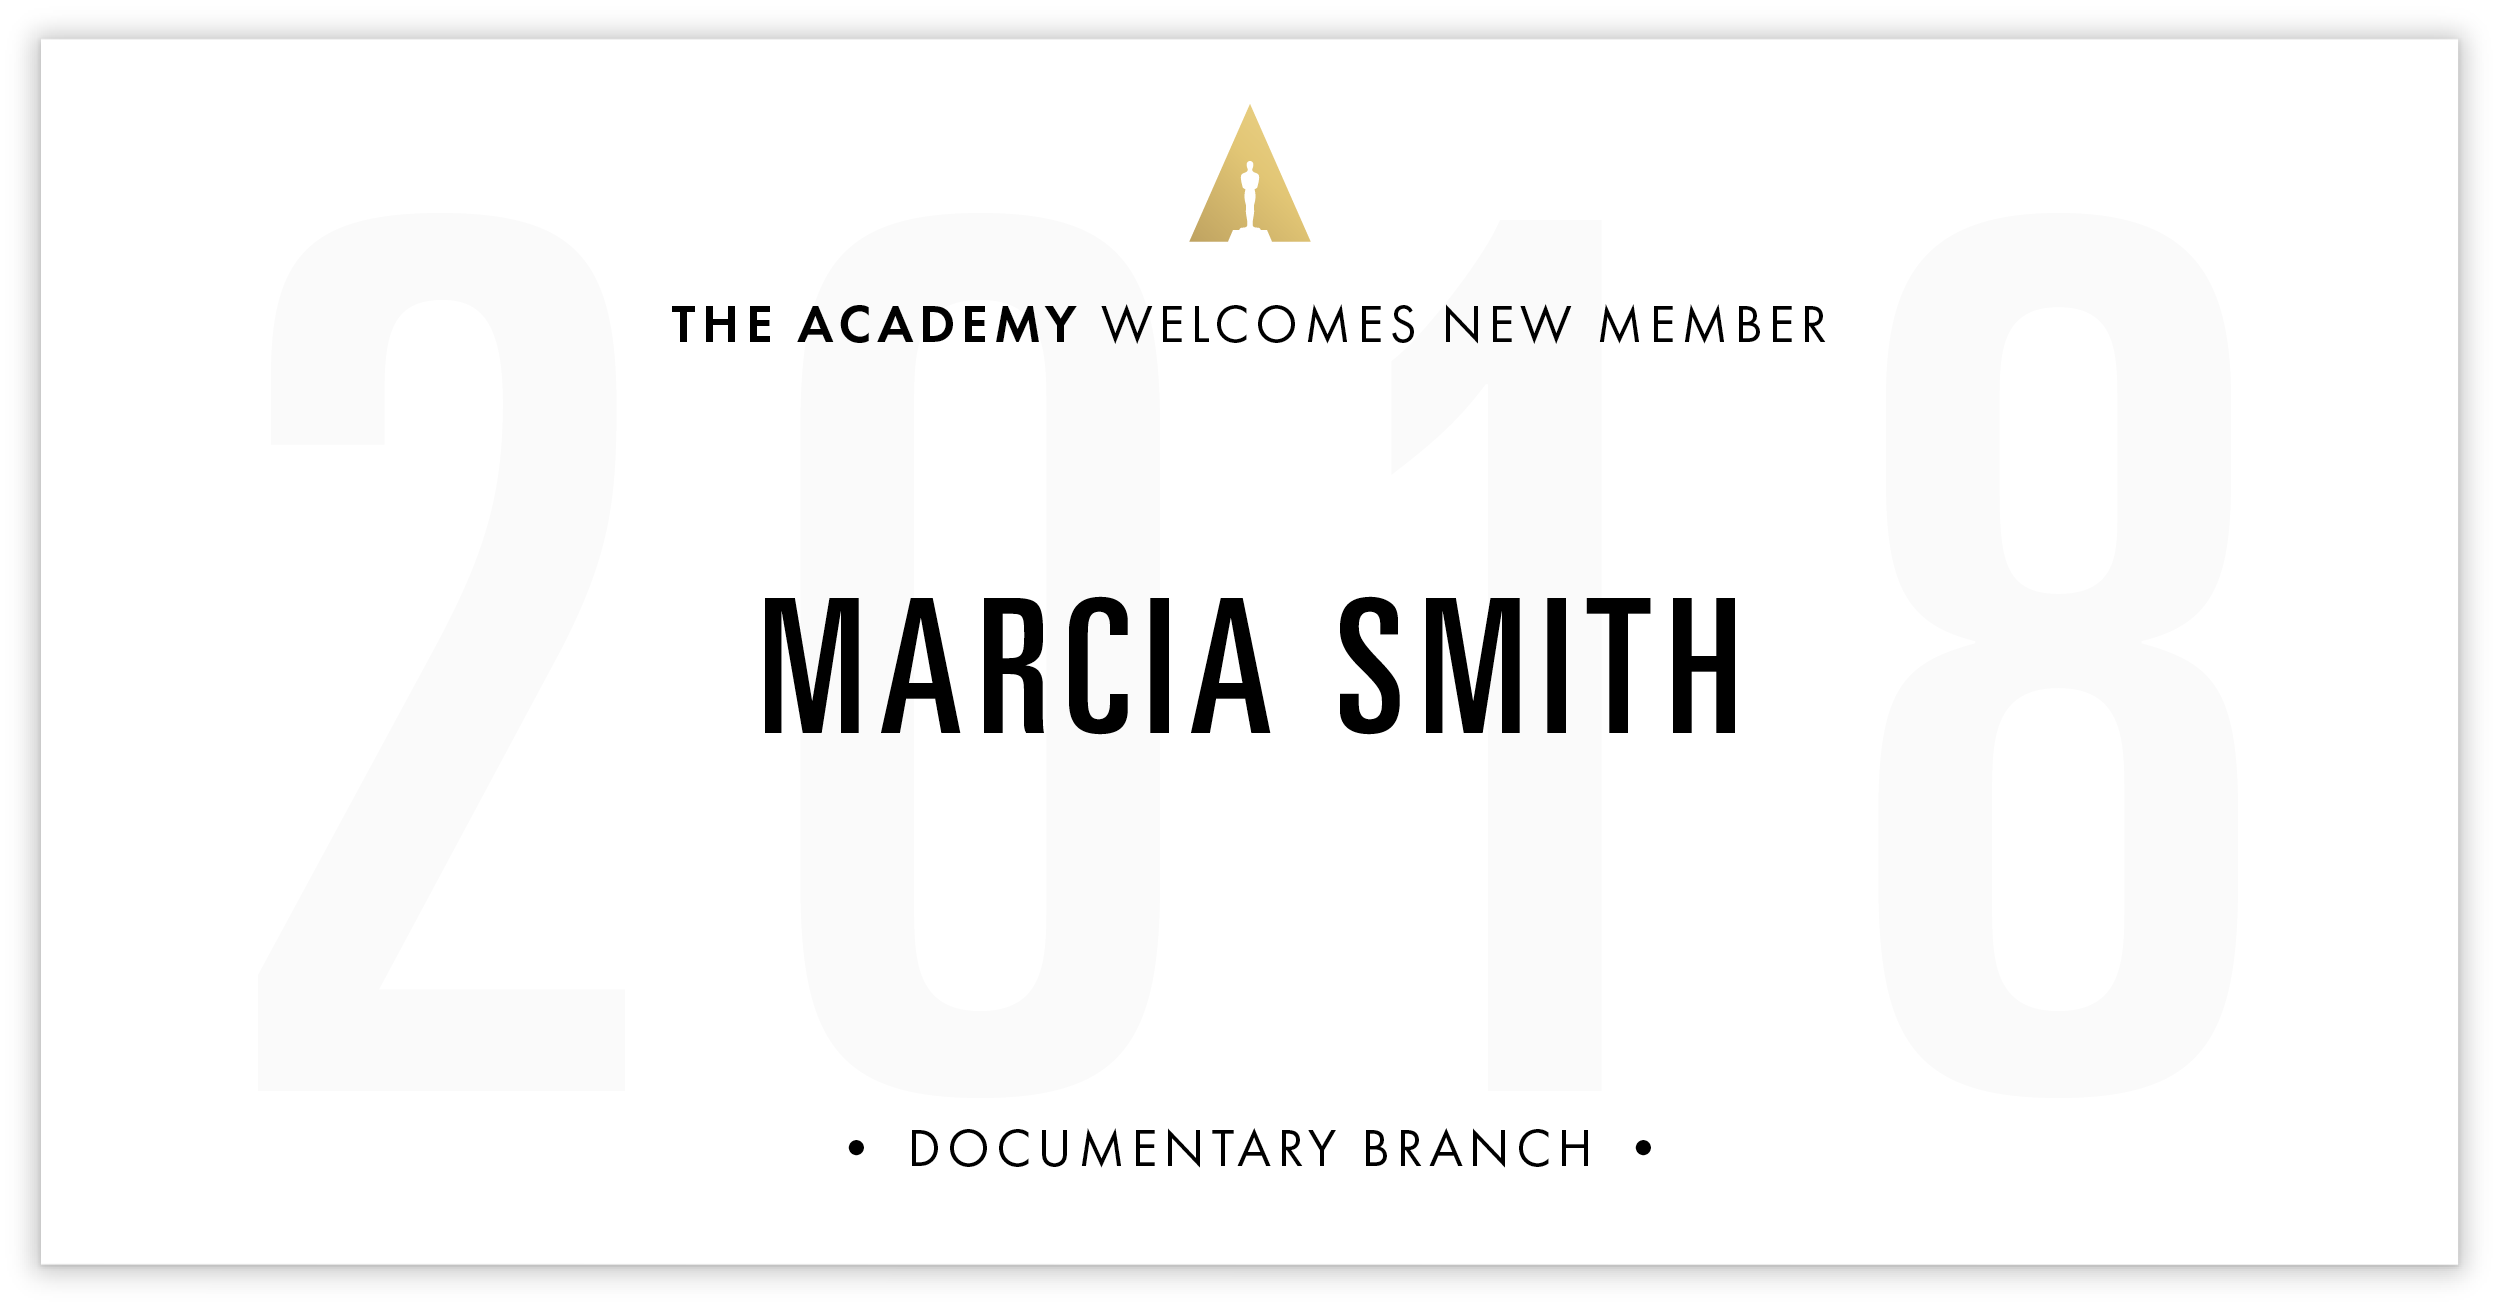 Marcia Smith is invited!